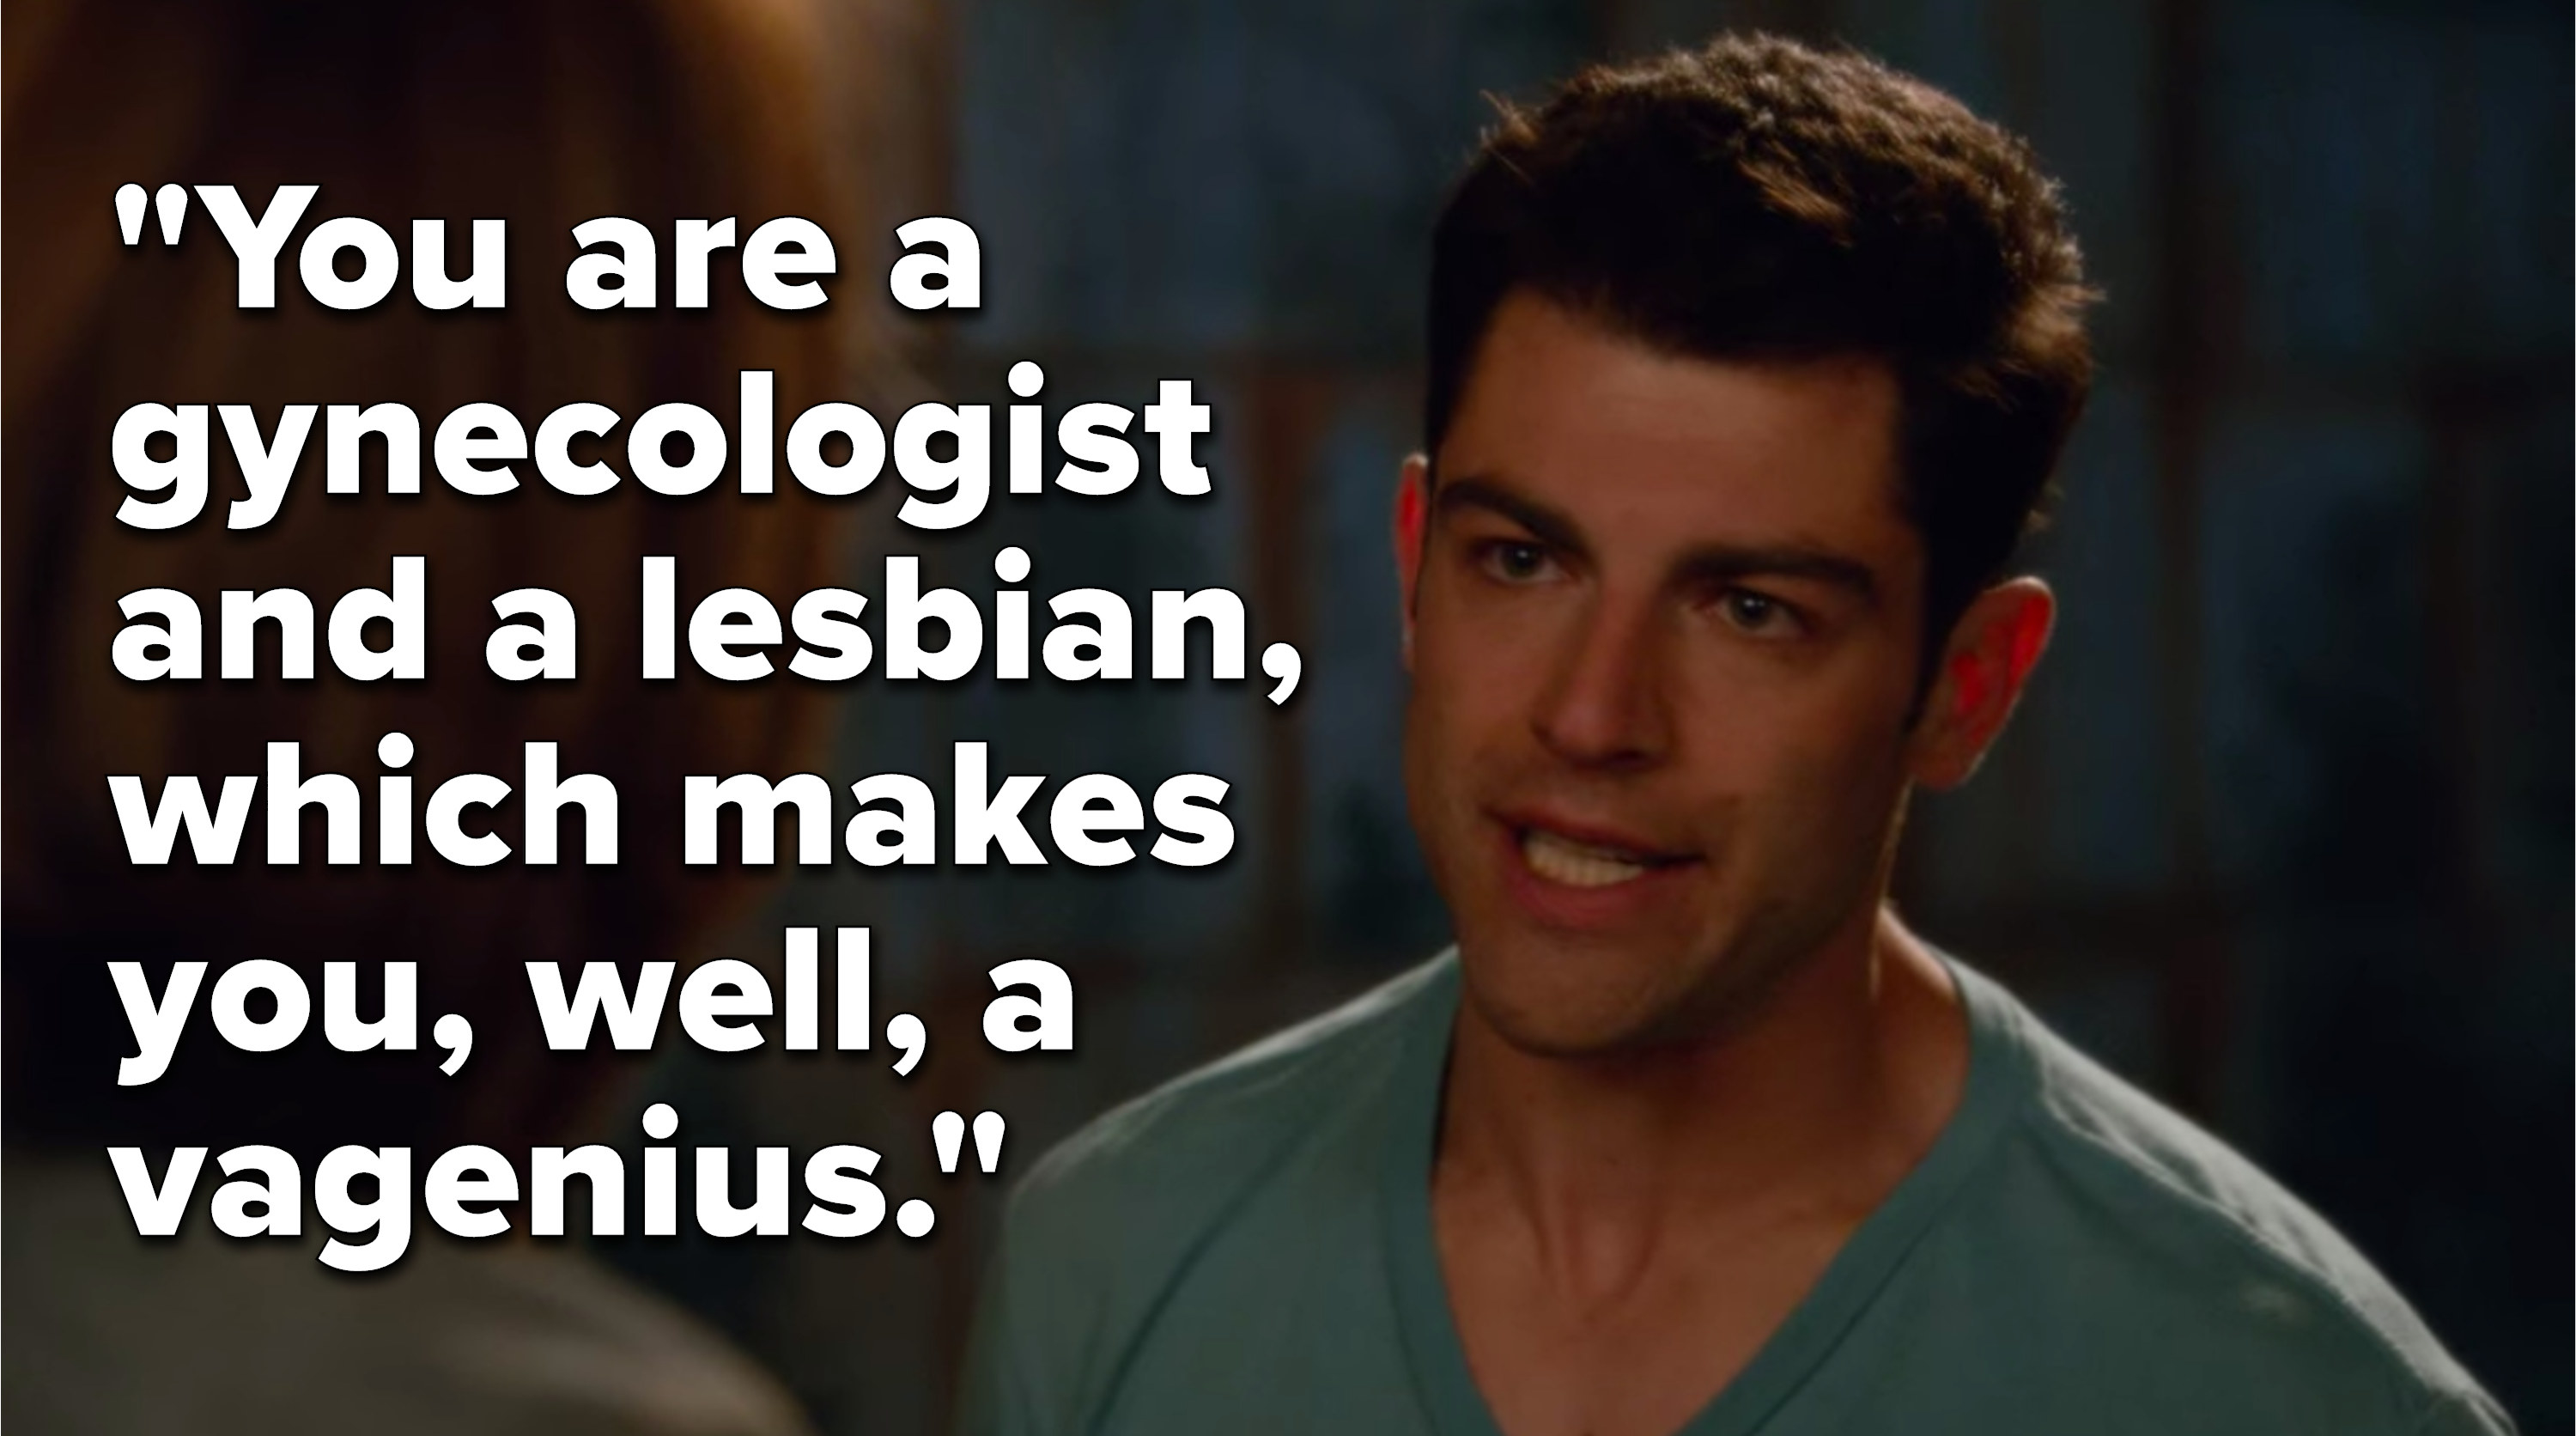 """Schmidt saying, """"You are a gynecologist and a lesbian, which makes you, well, a vagenius"""""""